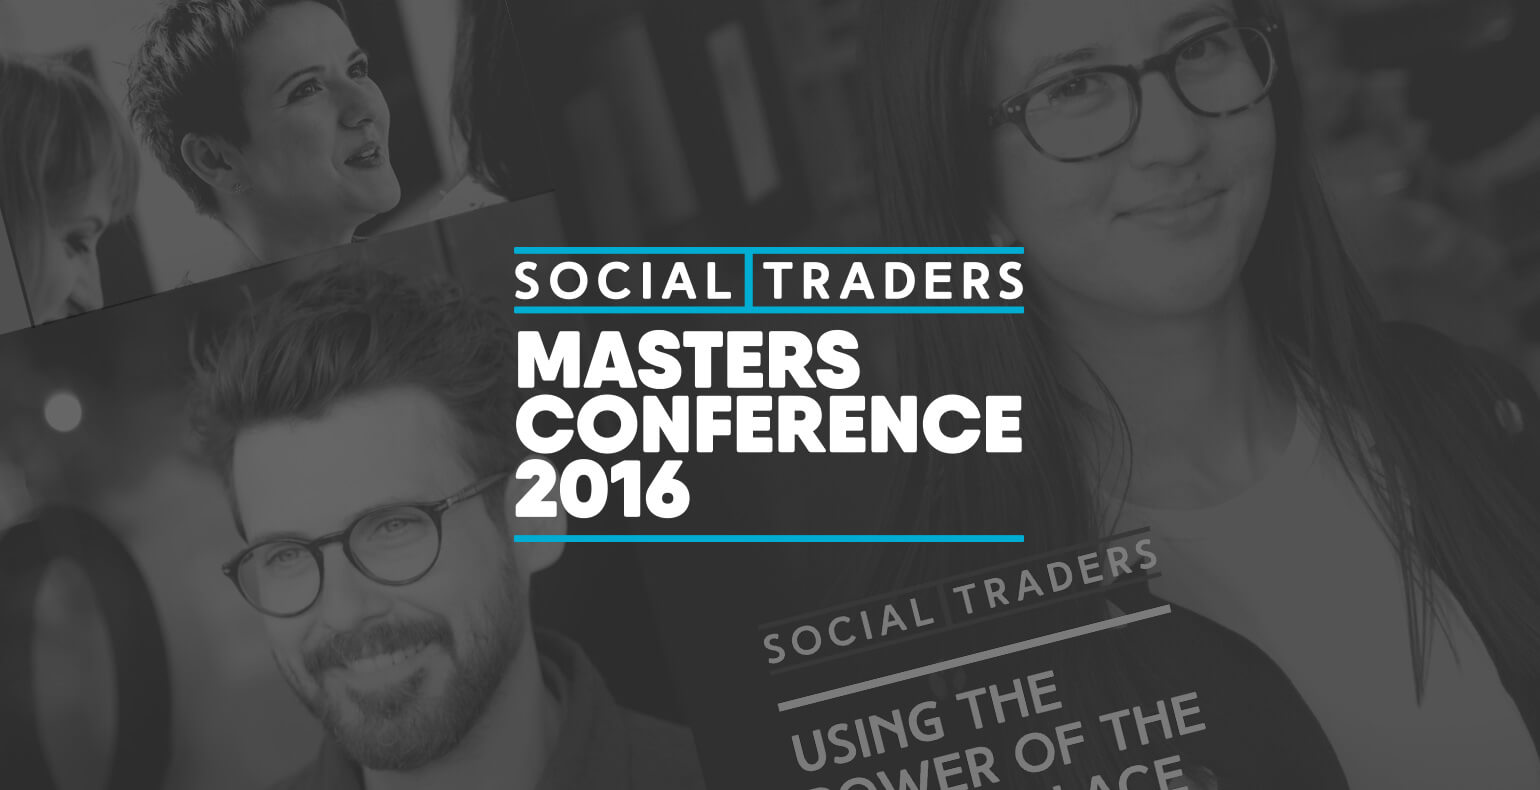 Master Conference 2016